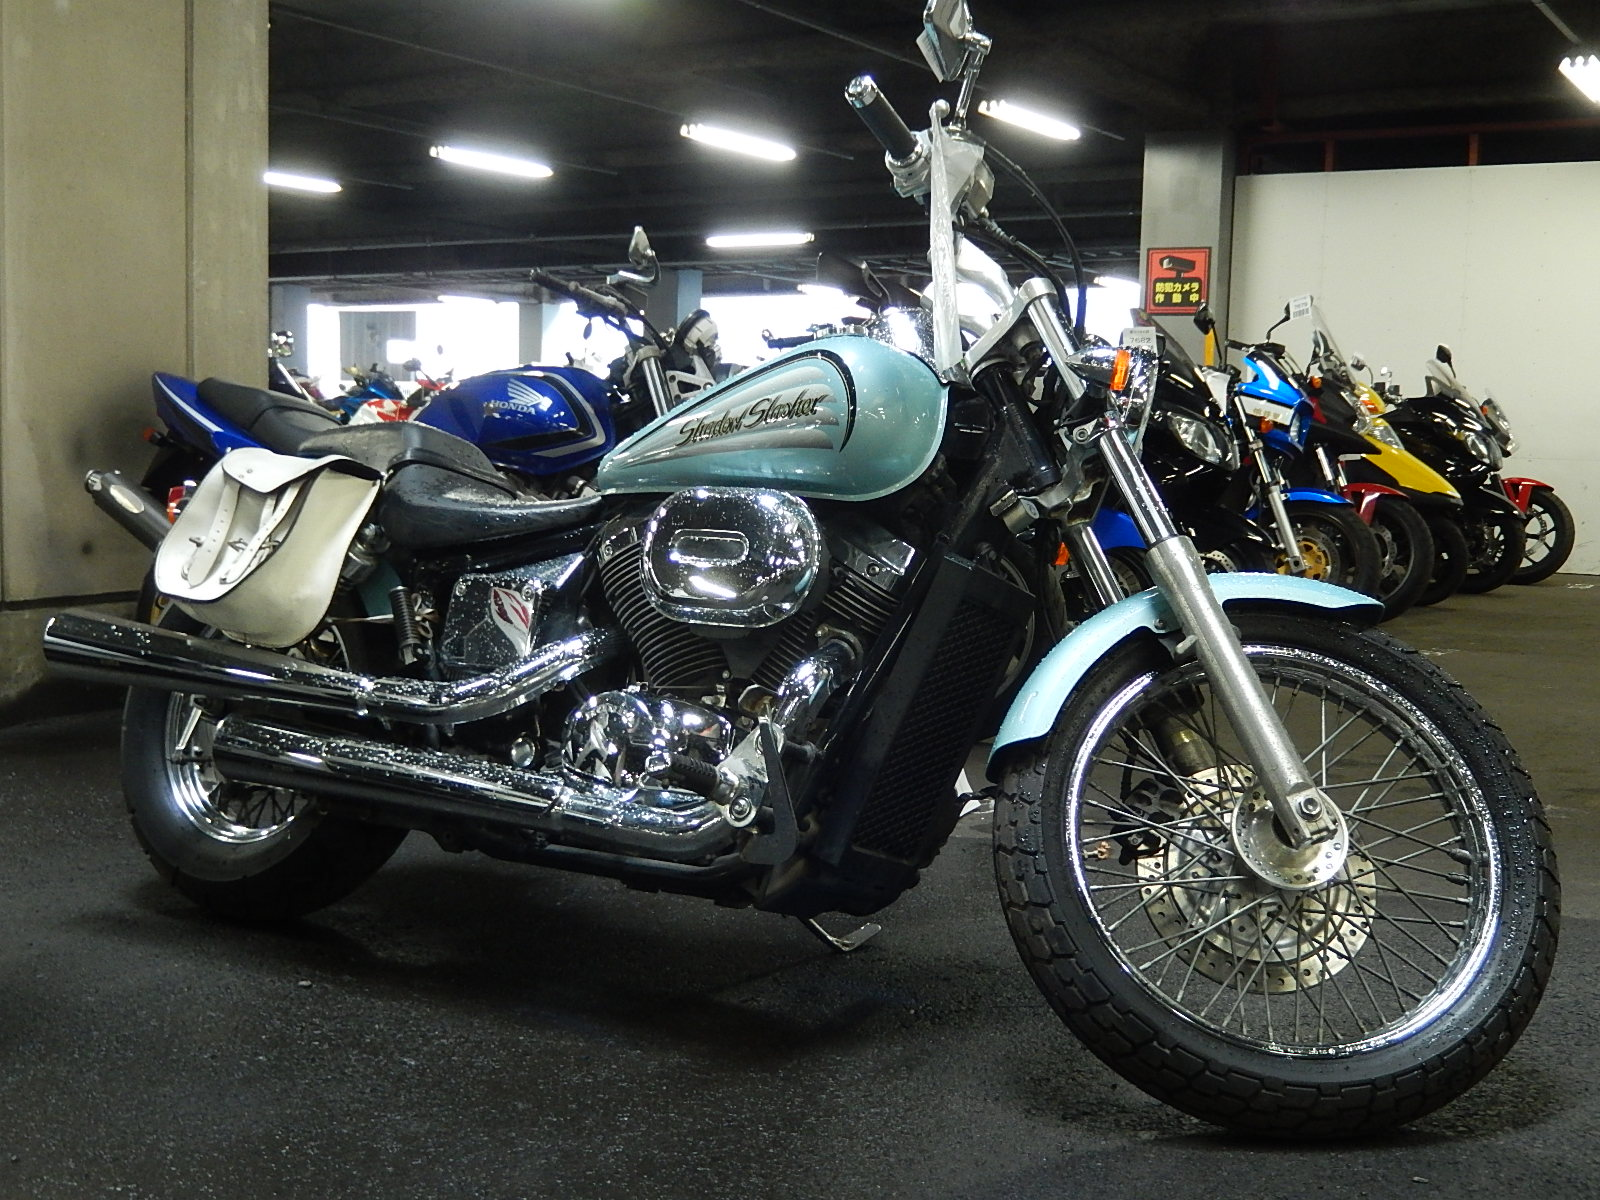 Обзор мотоцикла Honda Shadow Slasher (Хонда Шадов Слэшер) 400